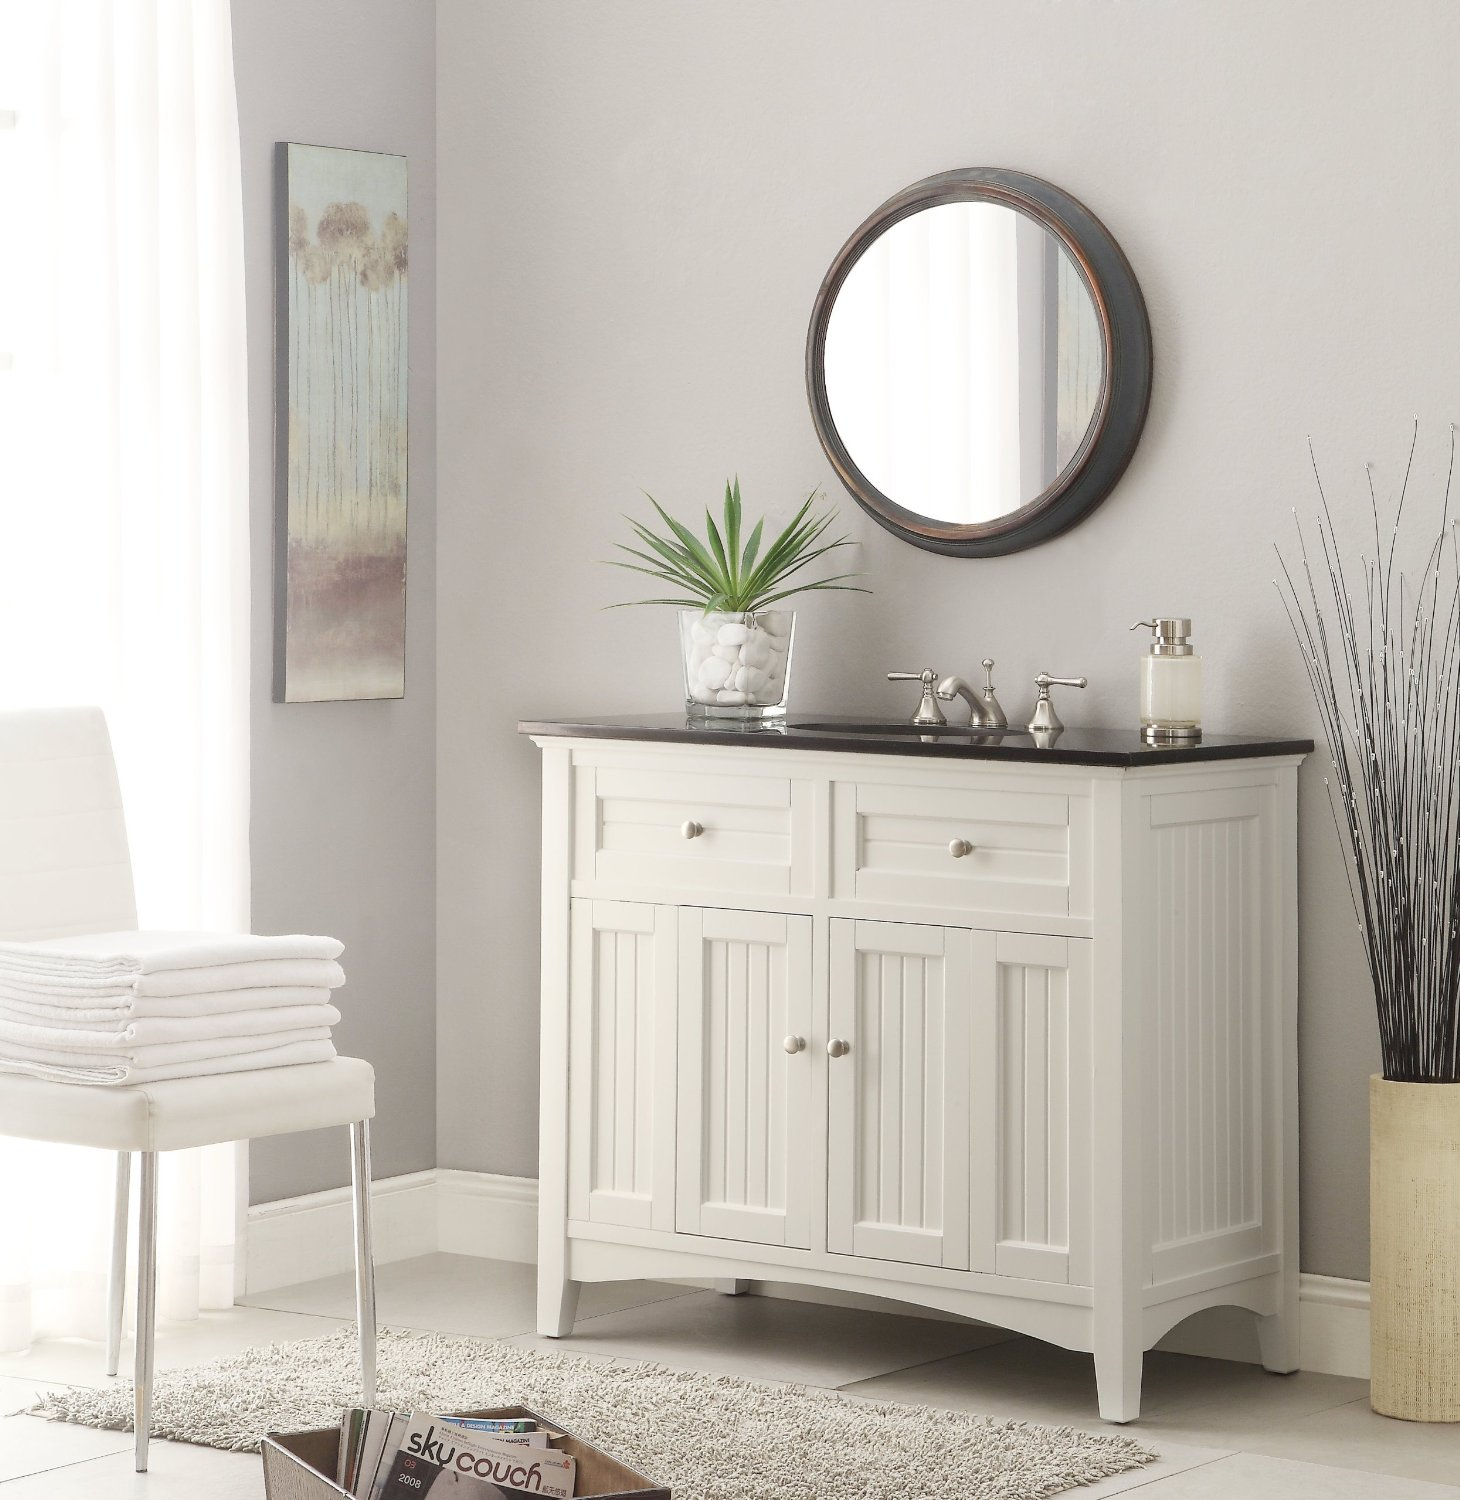 42 inch bathroom vanity with sink - Adelina 42 Inch Antique White Sink Bathroom Vanity Adelina 42 Inch Antique White Bathroom Vanity